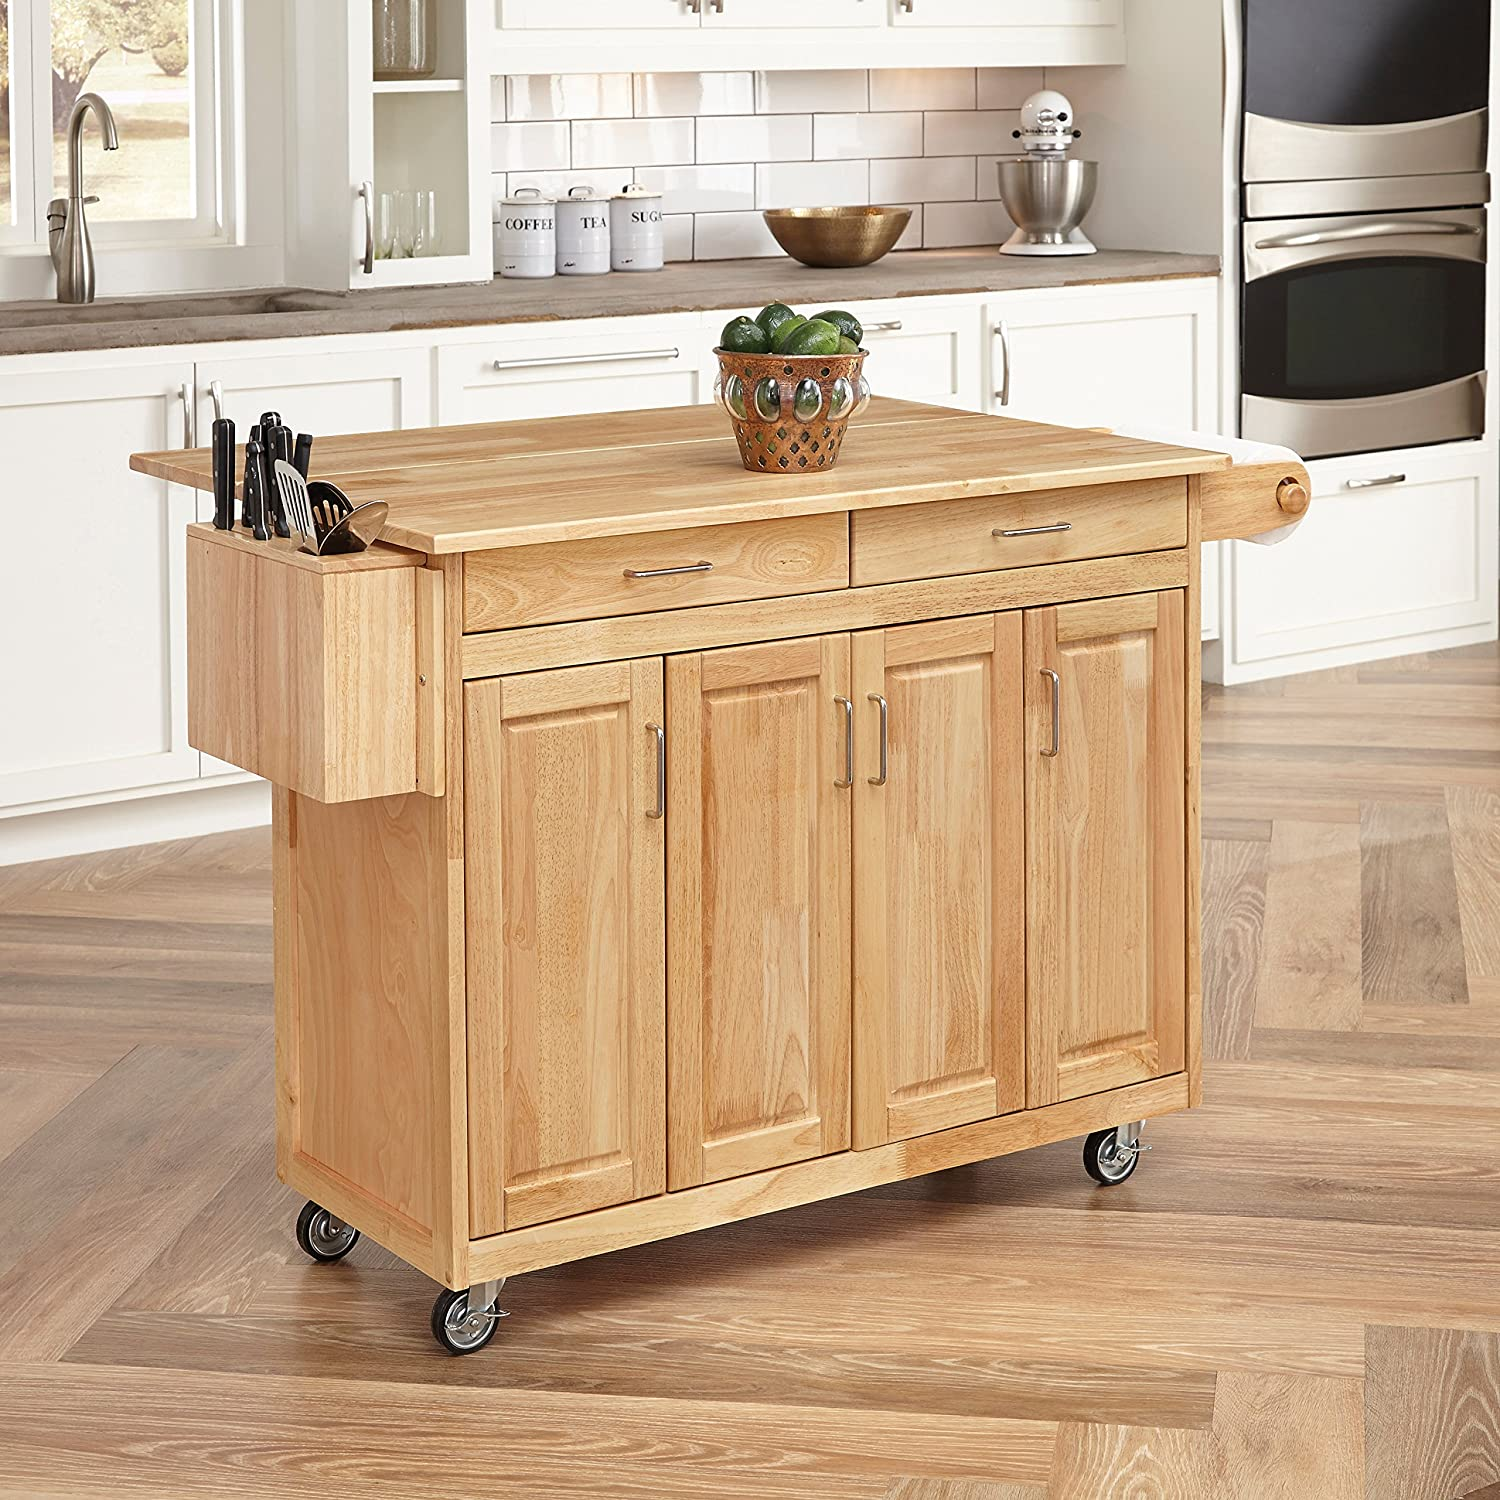 Oak Kitchen Carts And Islands Amazon home styles 5023 95 wood top kitchen cart with breakfast amazon home styles 5023 95 wood top kitchen cart with breakfast bar natural finish kitchen dining workwithnaturefo